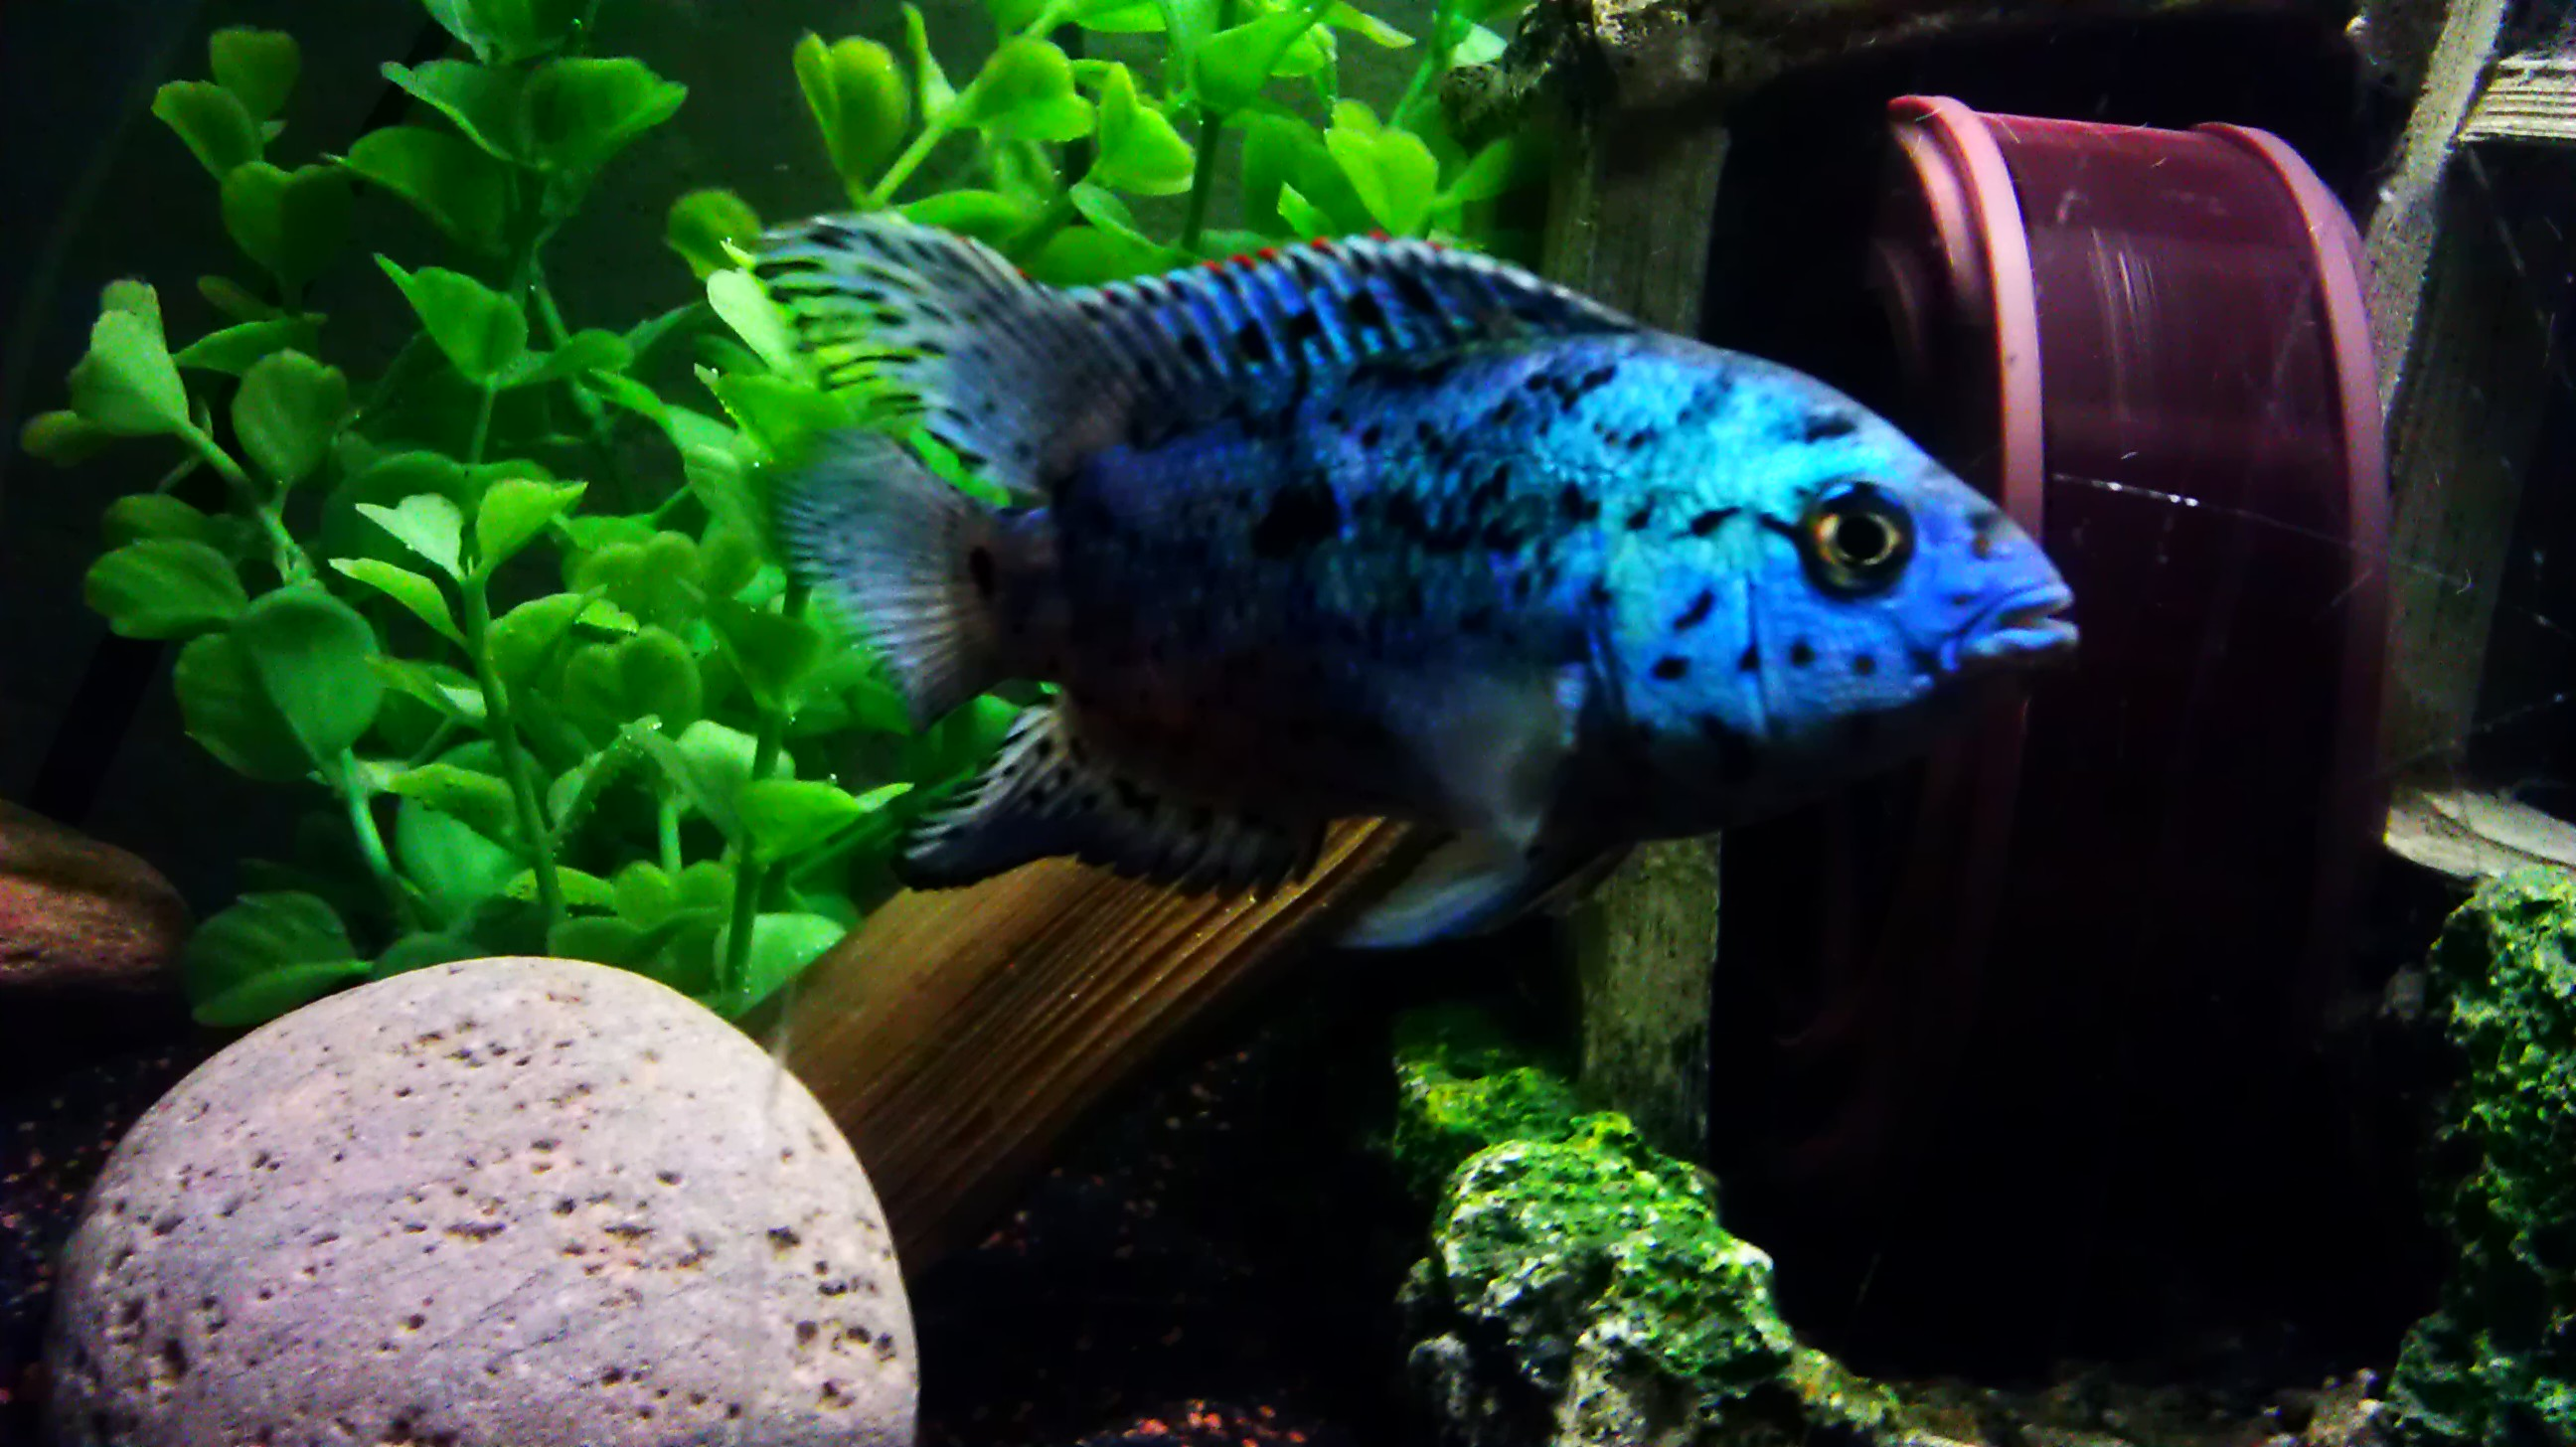 Fish Tank Maintenance Service San Diego additionally T112 Le Poisson Roseau Erpetoichthys Calabaricus Menace D Extinction moreover Small Fish Tank Maintenance Contract additionally Different Pleco Species also Tiger Oscar South American Cichlid. on oscar fish tankmates